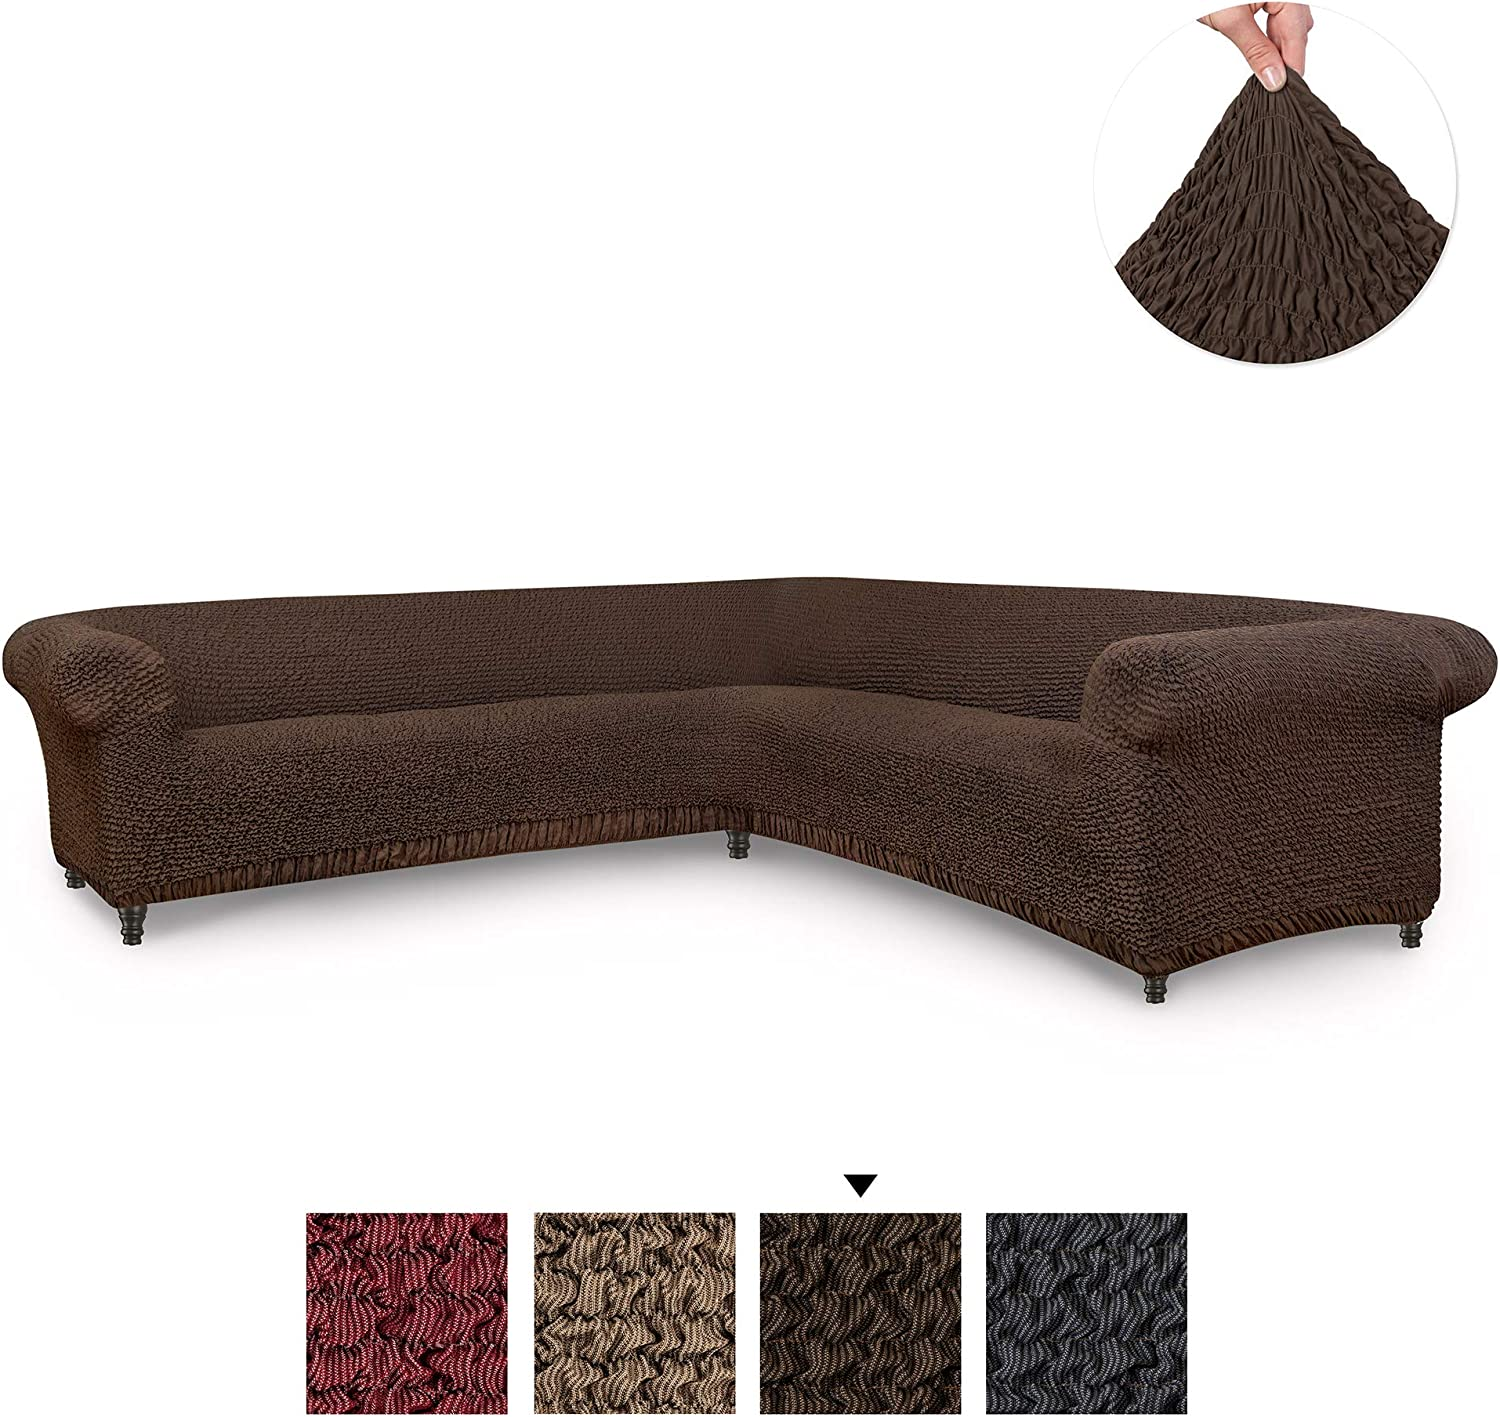 Sectional Sofa Cover - Corner Couch Cover - Corner Slipcover ...